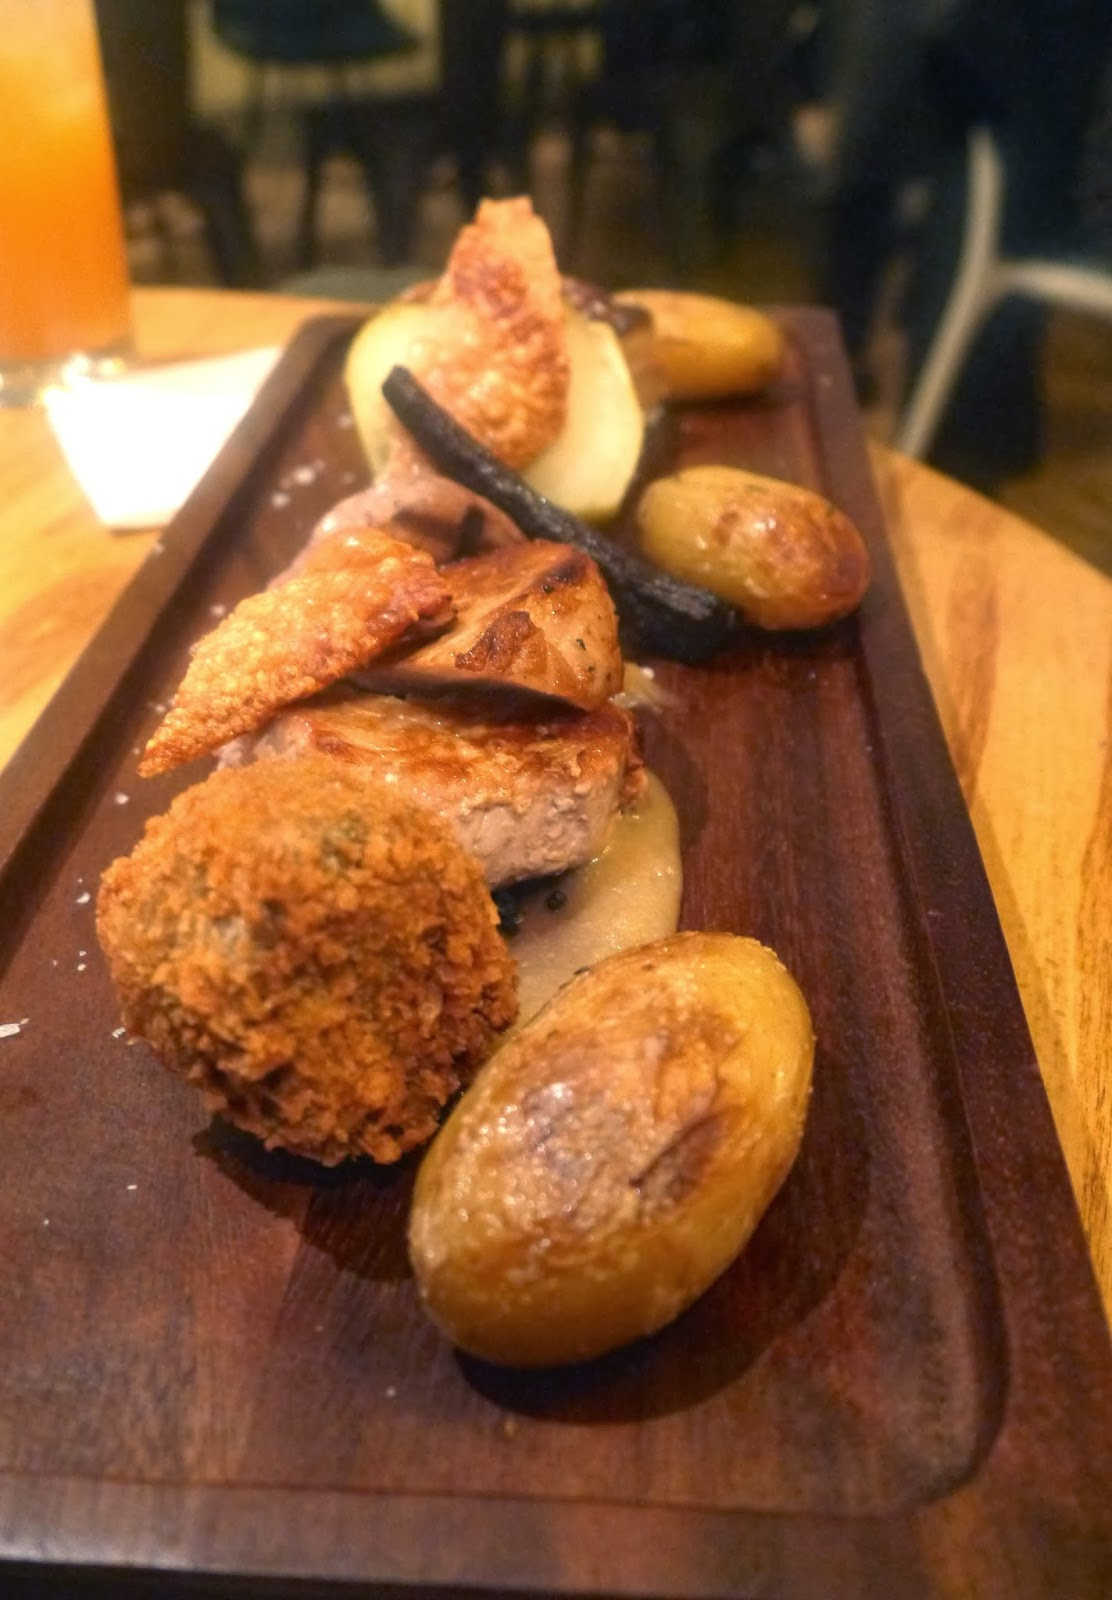 Plank of Pig - exactly as it sounds, plenty of crackling and black pudding.